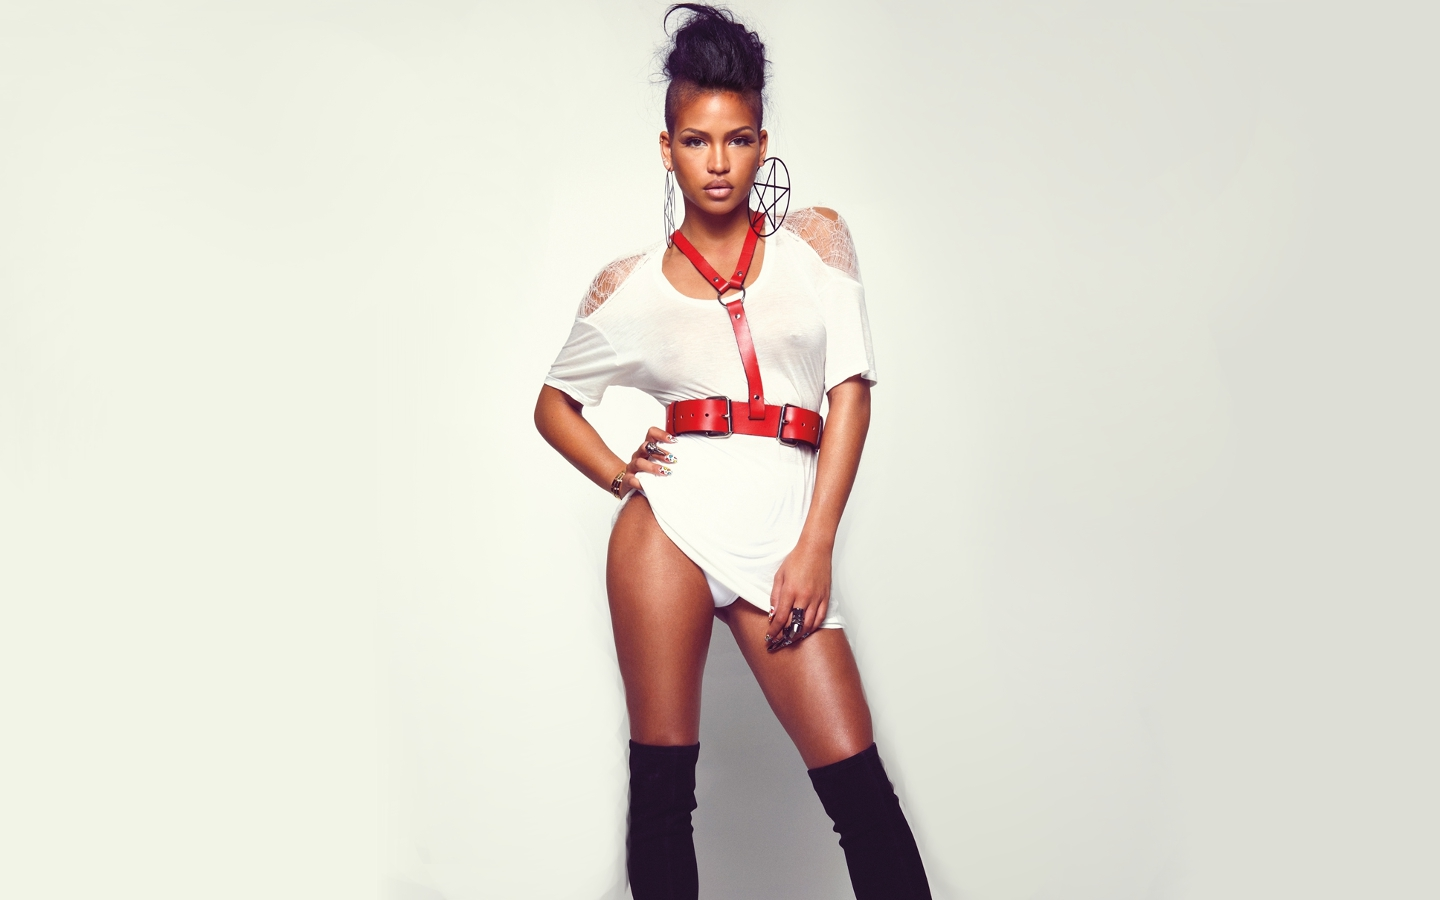 cassie wallpapers photos images - photo #4